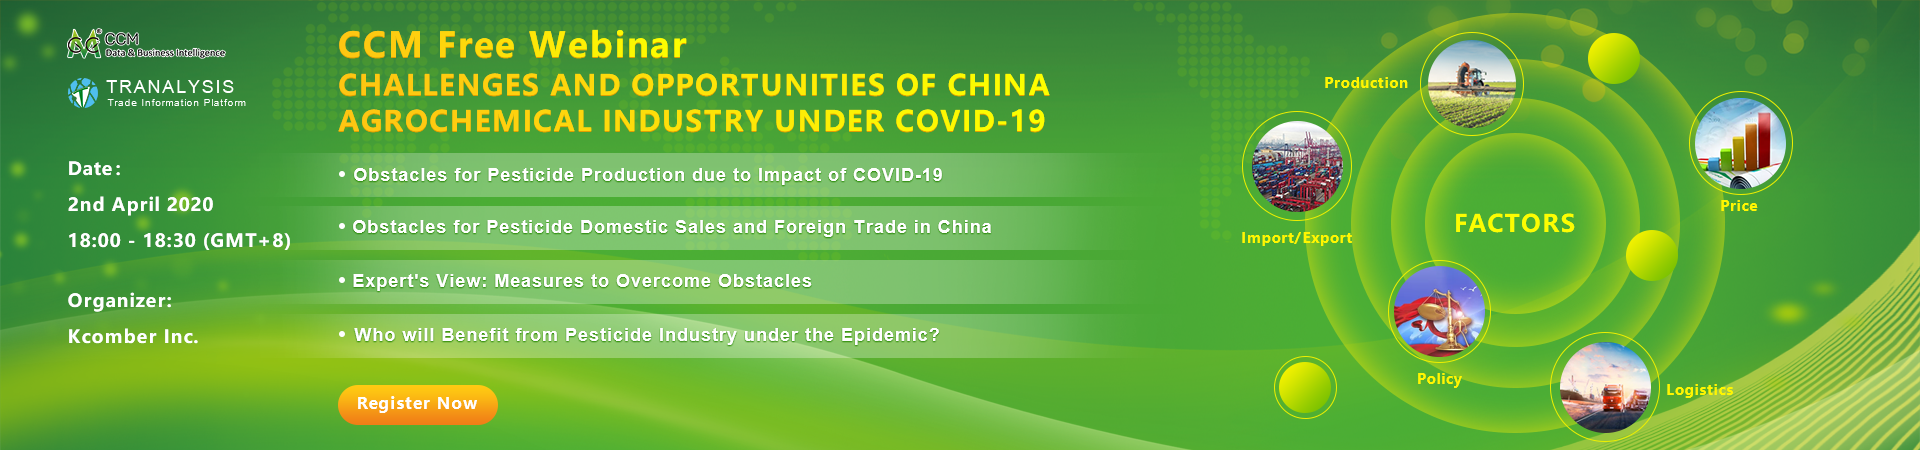 CHALLENGES AND OPPORTUNITIES OF CHINA AGROCHEMICAL INDUSTRY UNDER COVID-19